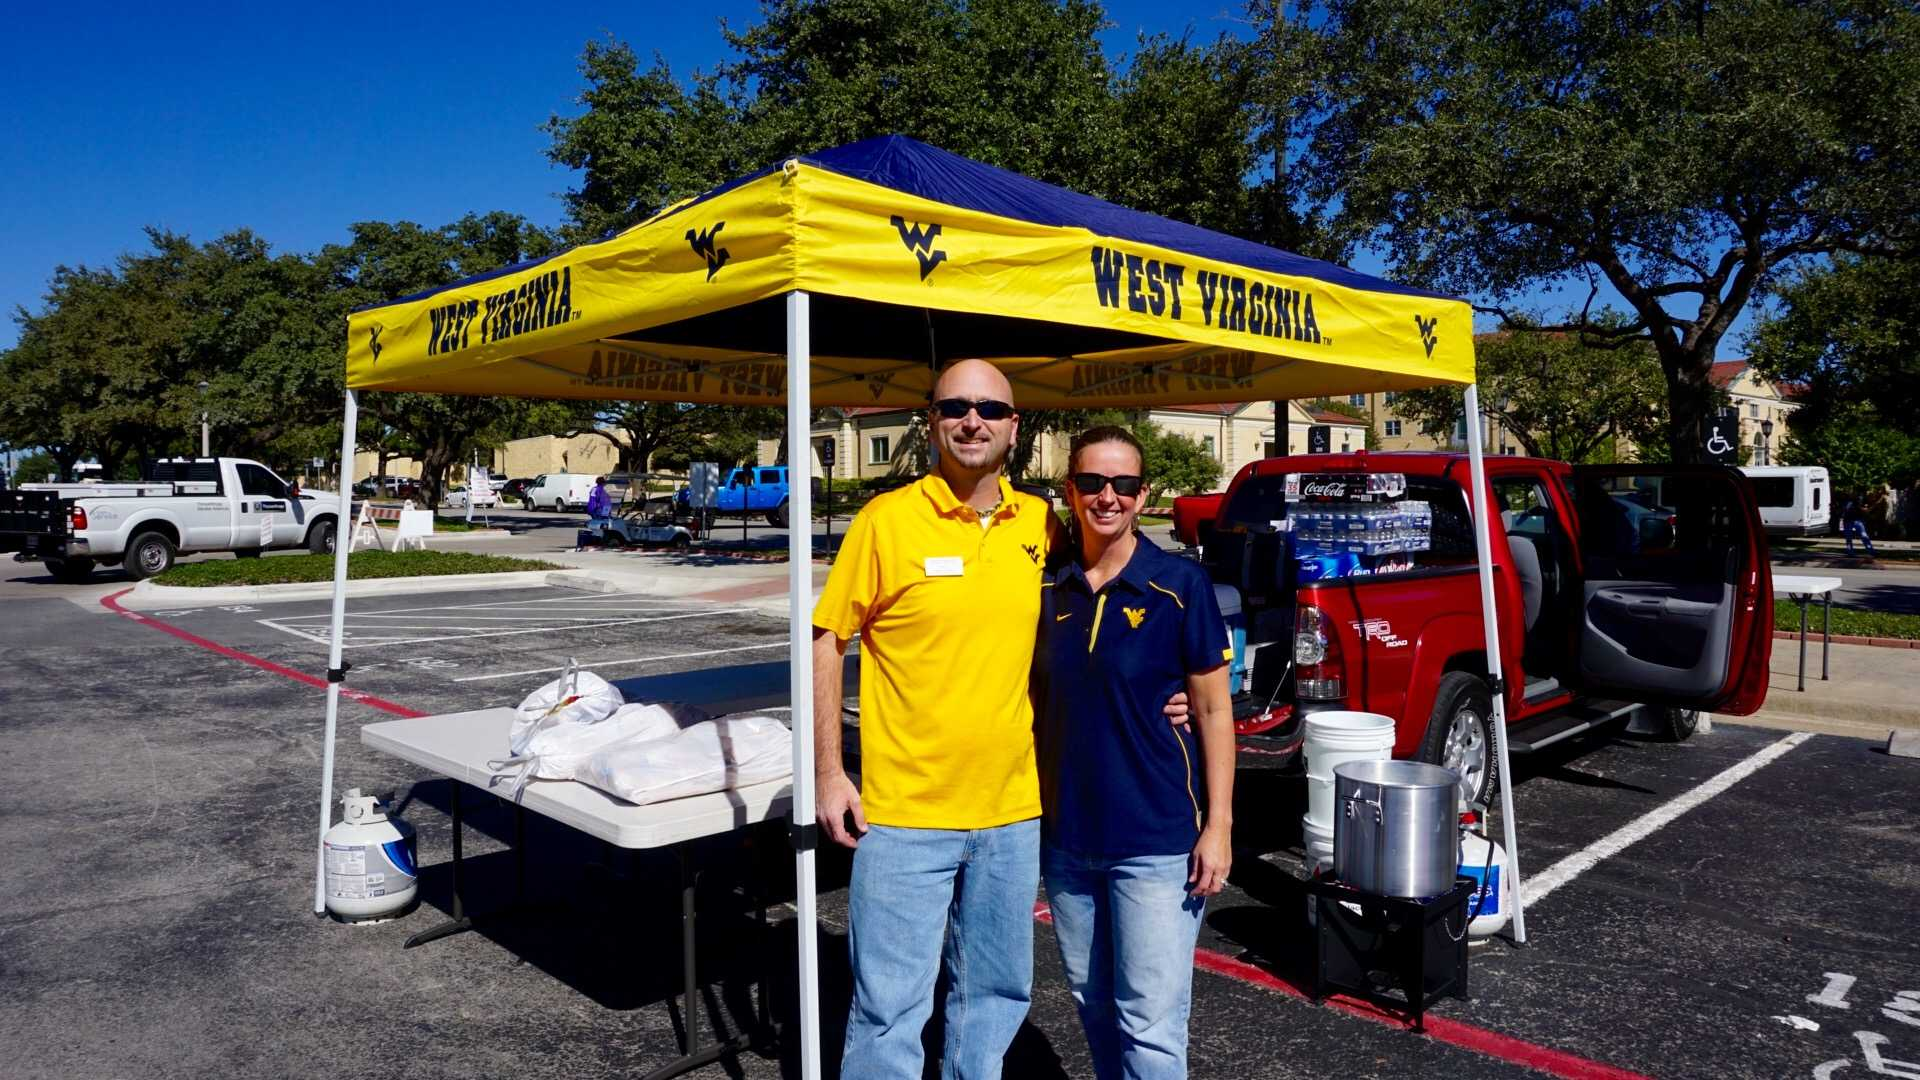 West Virginia tailgaters associated with the DFW Mountaineers arrived at TCU early to set up their tailgate outside of the Amon G. Carter Stadium.